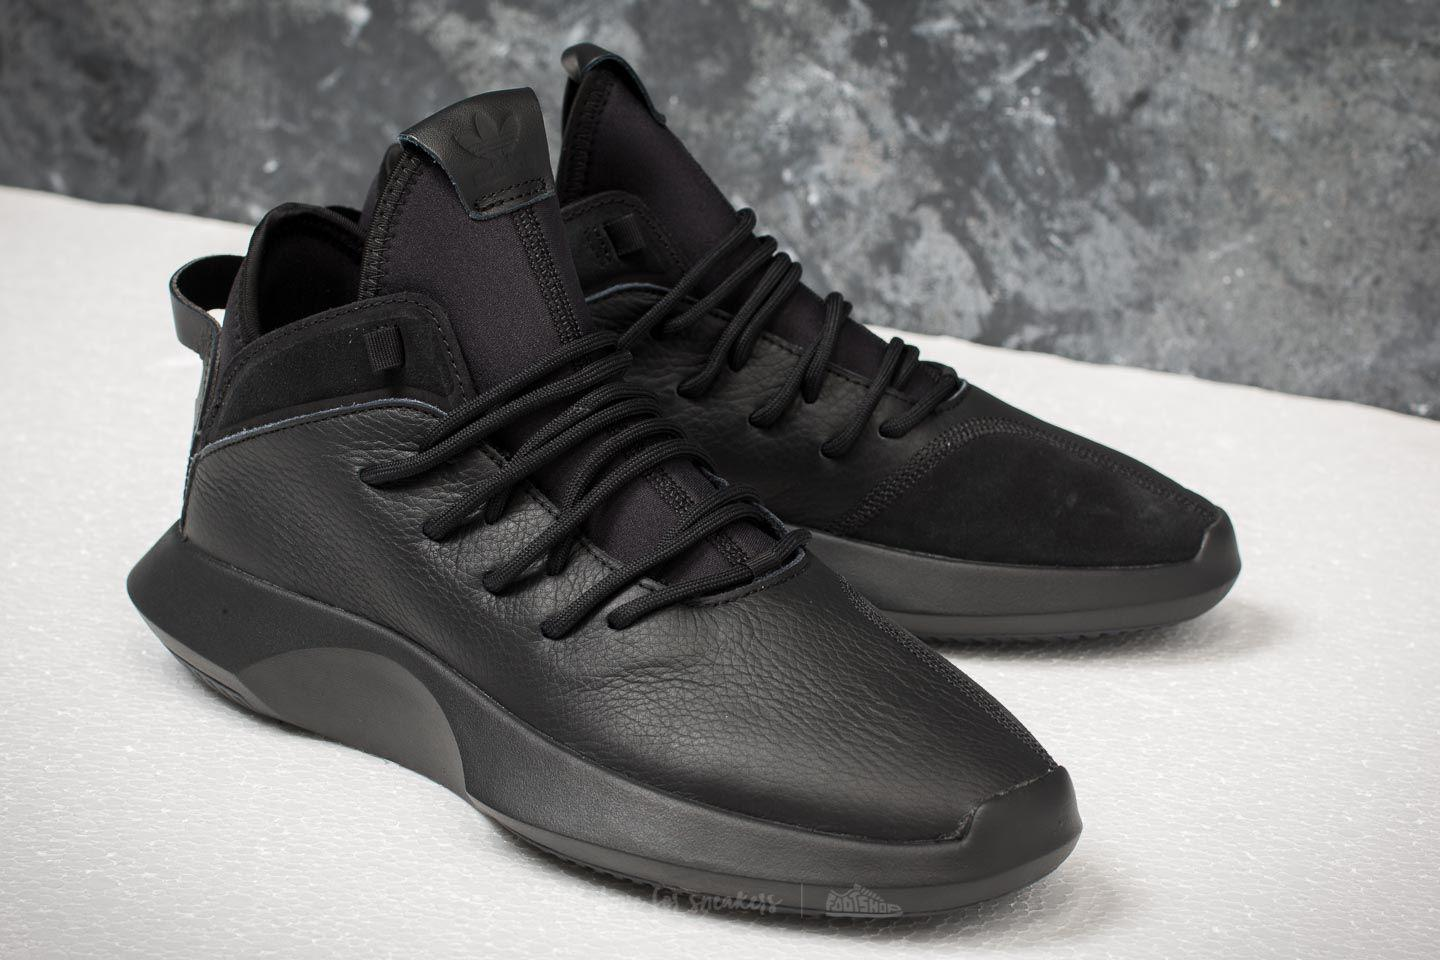 pretty nice 2bfbb 2bee7 Lyst - adidas Originals Adidas Crazy 1 Adv Core Black Core B